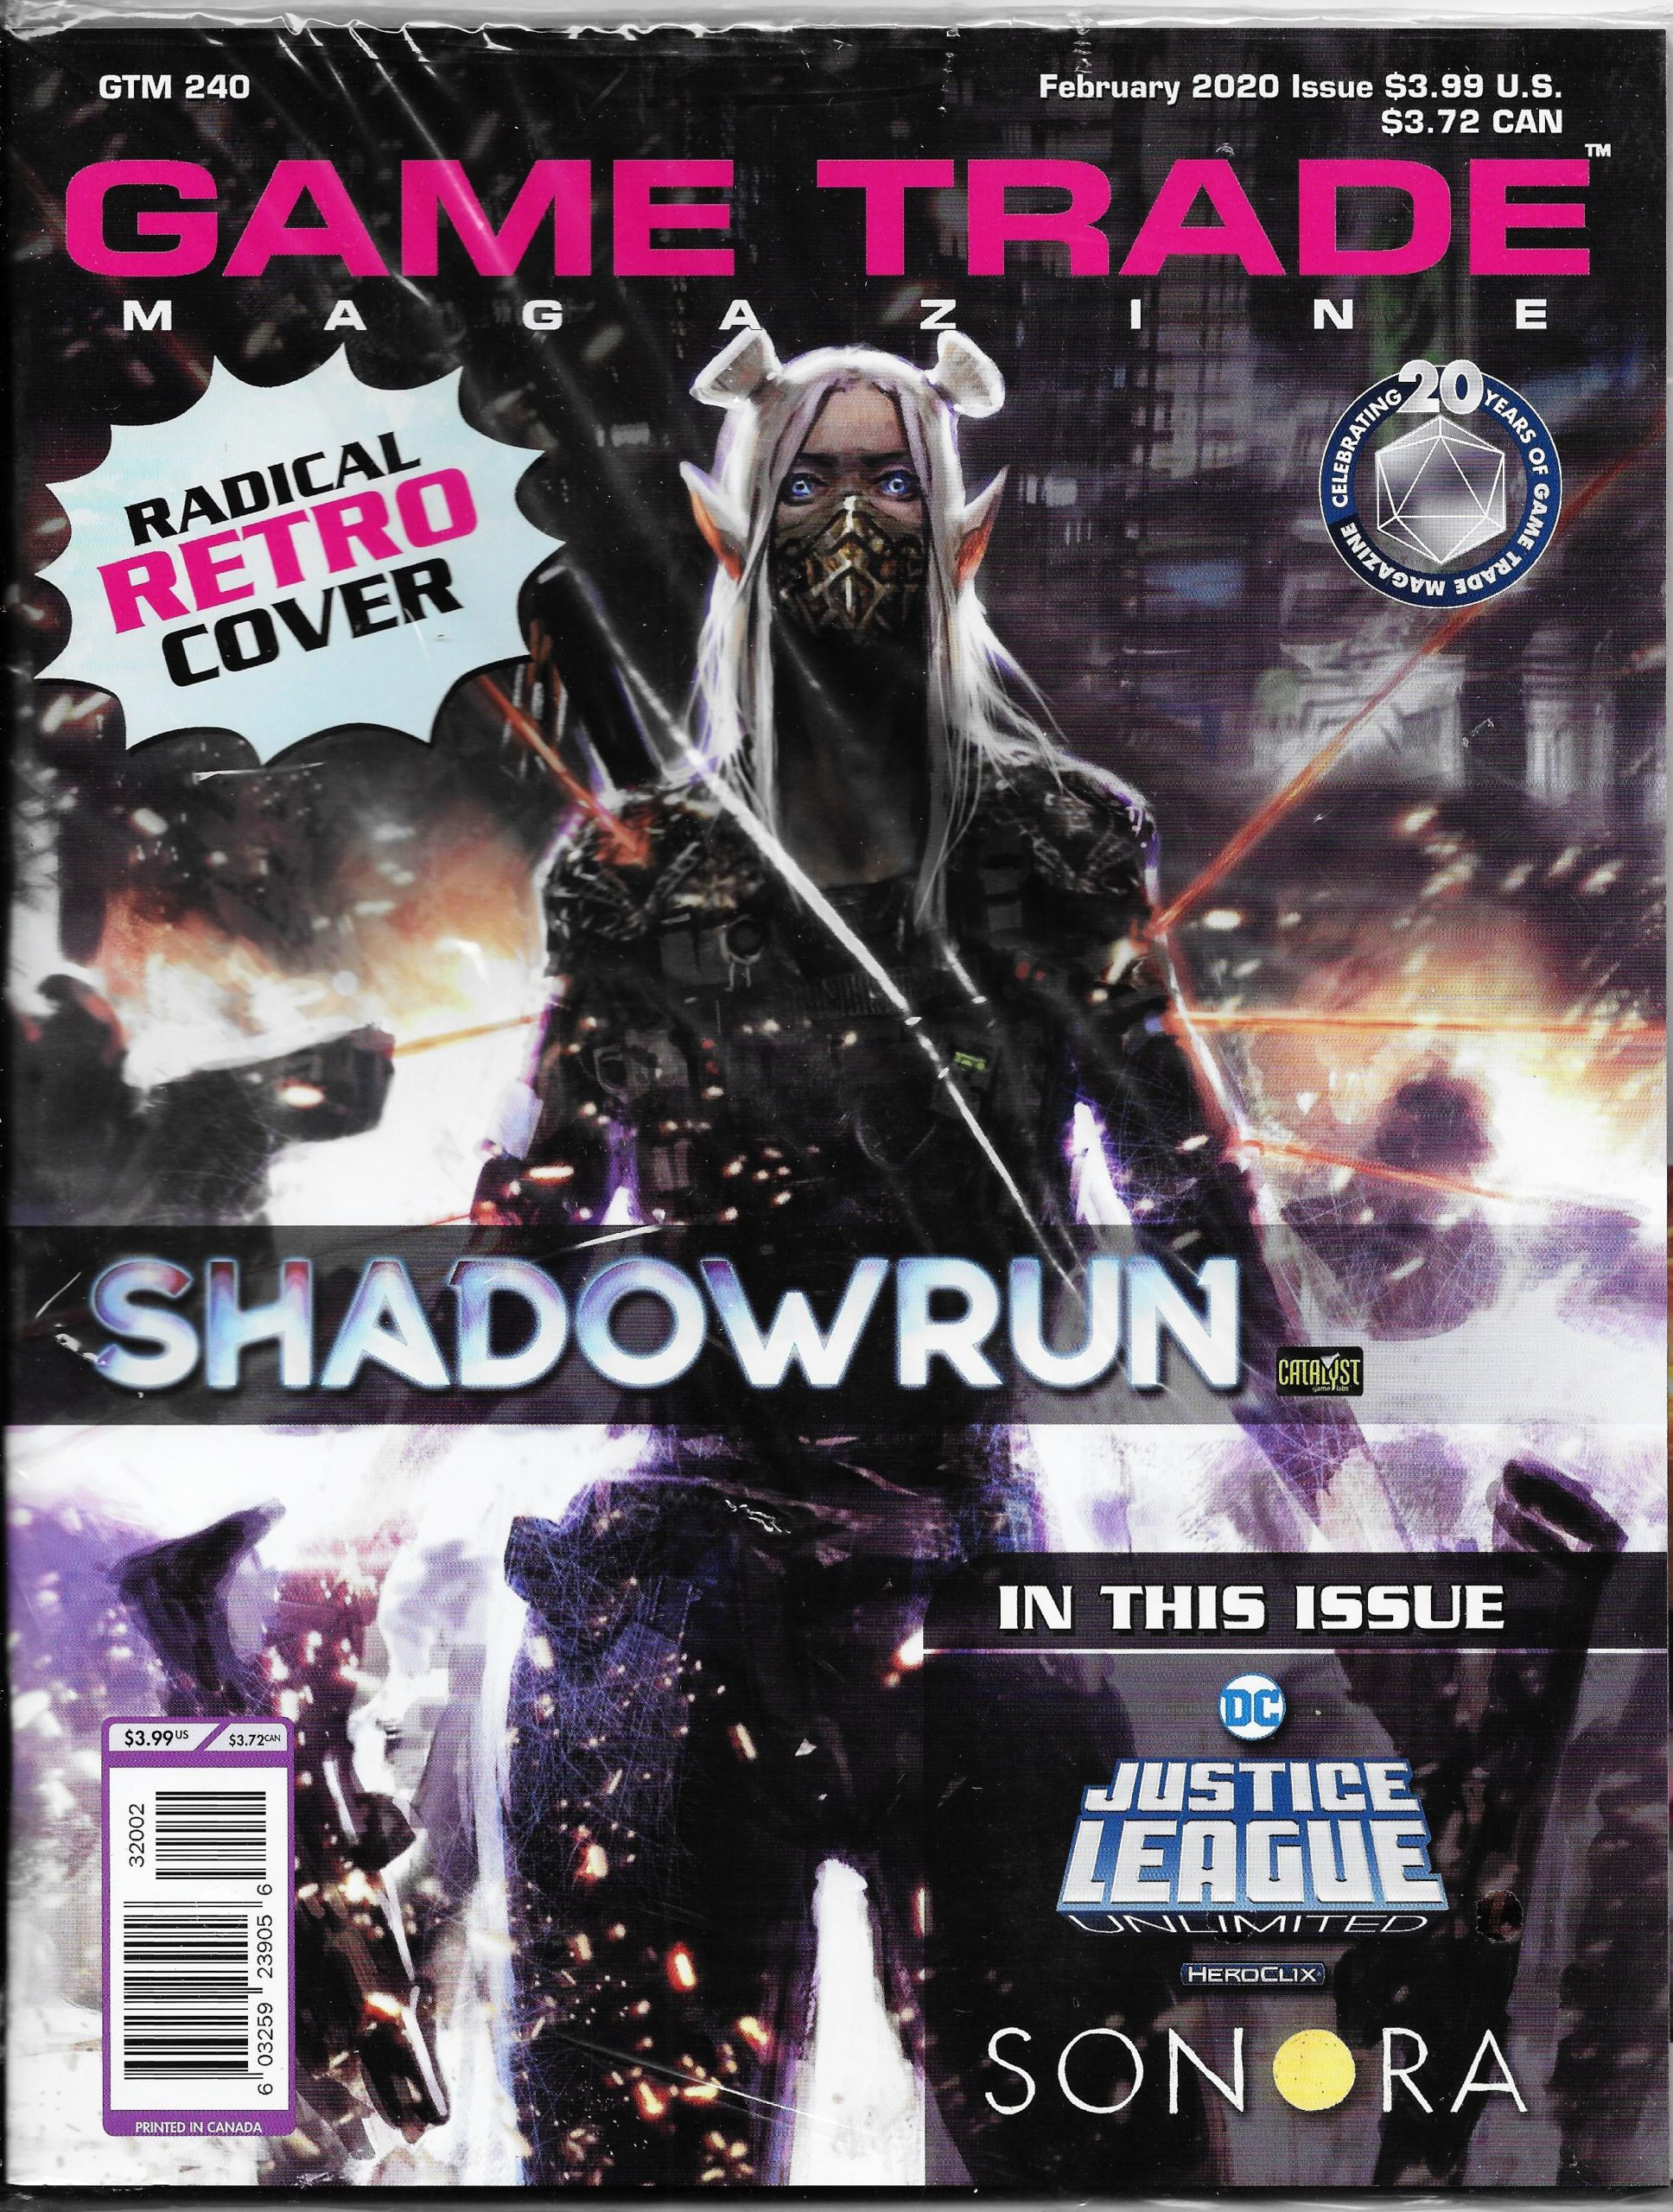 Game Trade Magazine #240 Sale Copy